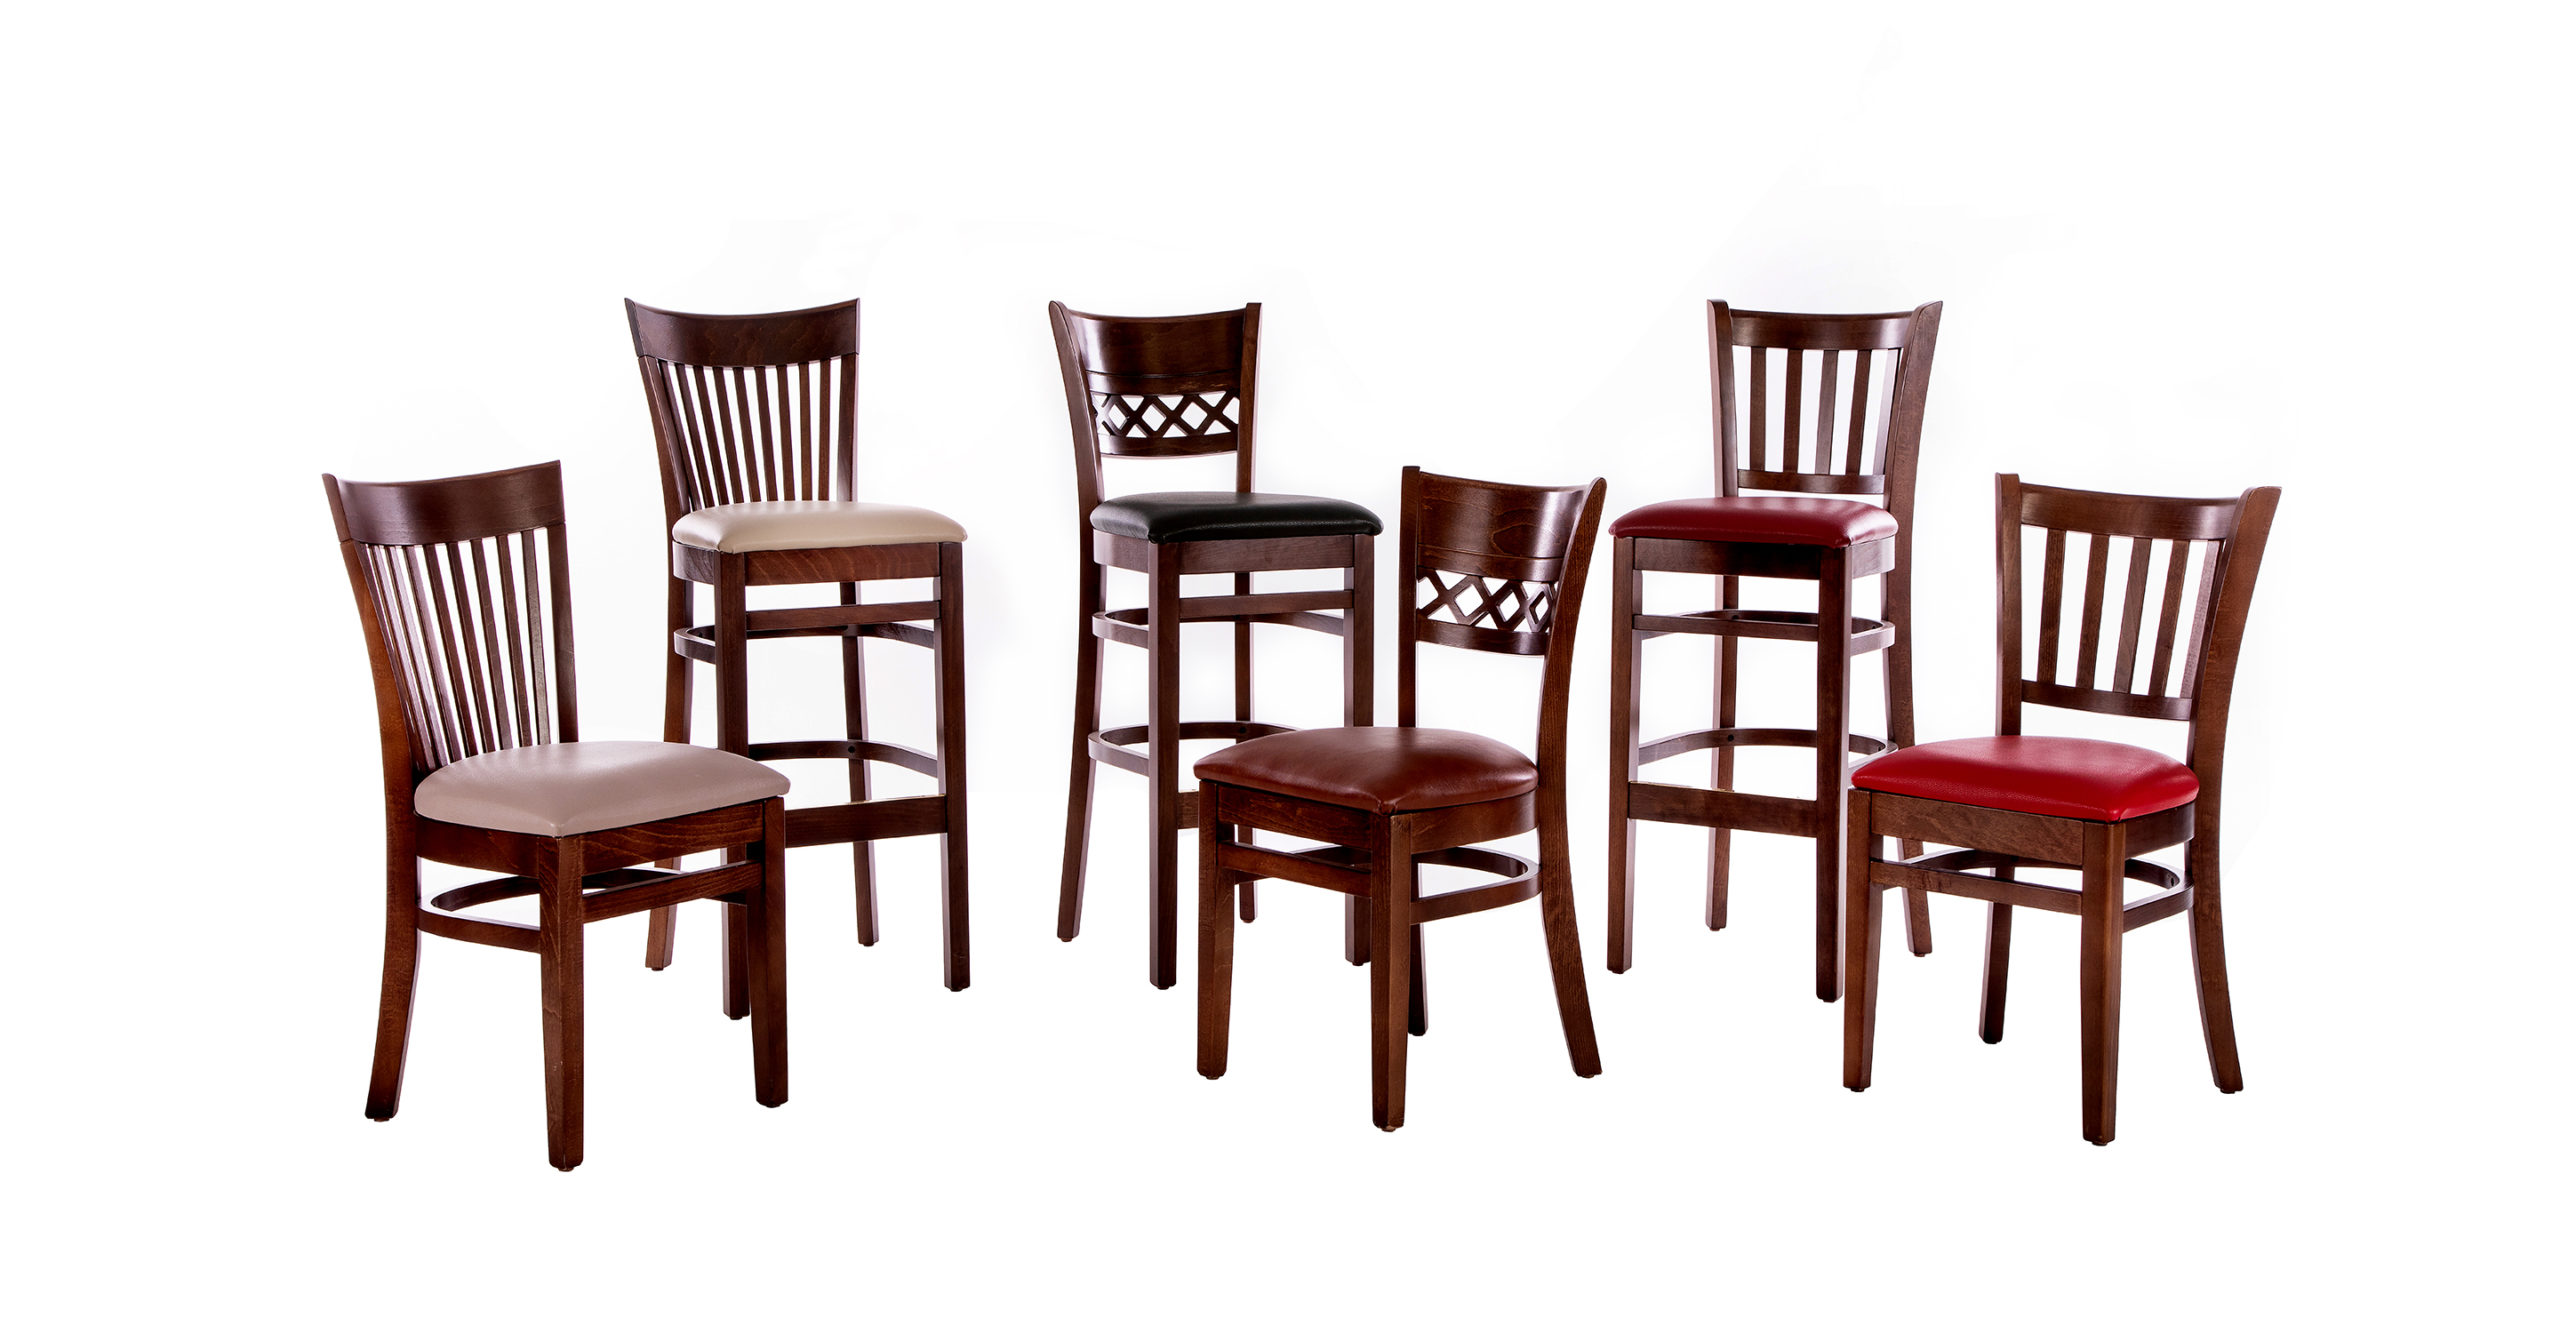 Monaghan Brothers Mayo made hospitality chairs - website photography by Sean Flynn, The Commercial Photographer Ireland